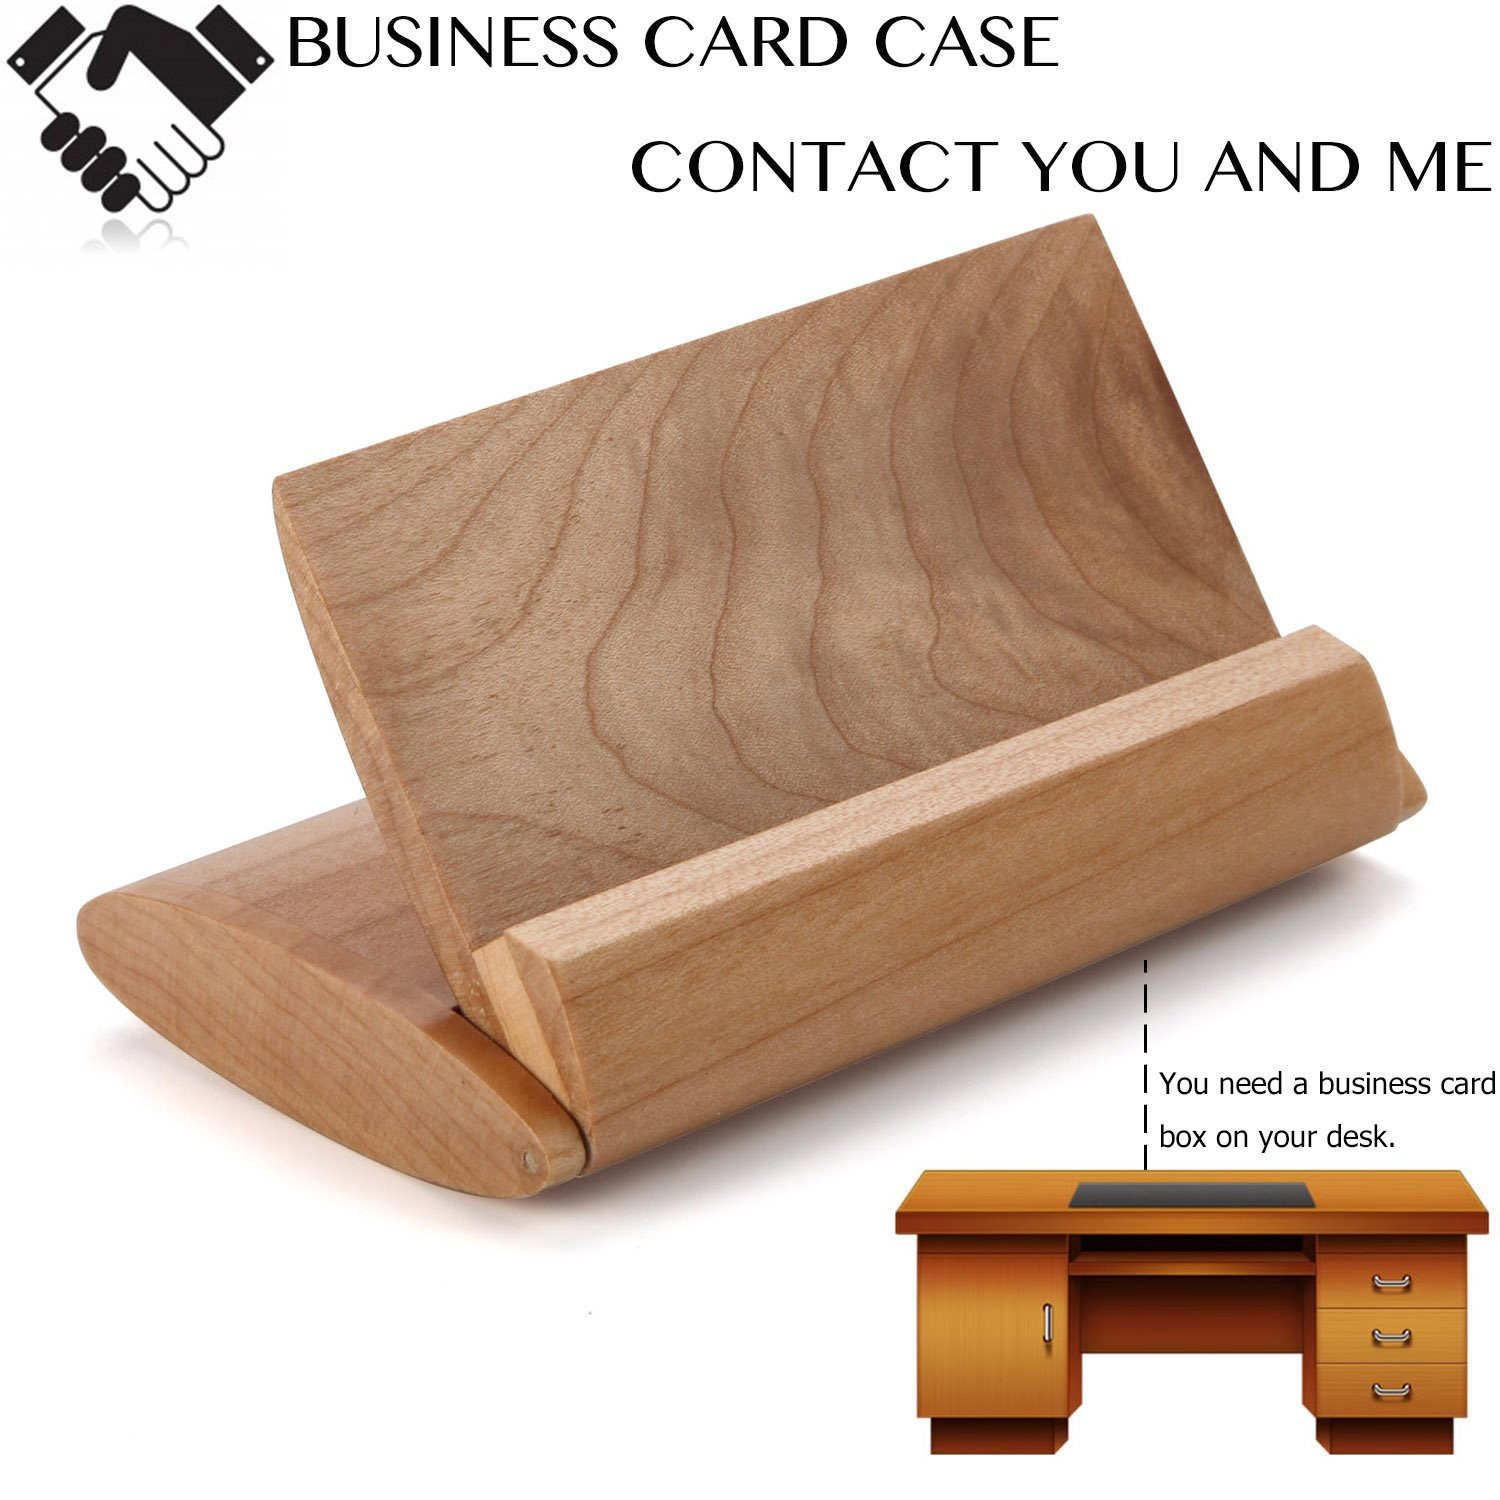 Amazon wood business card case holder vimvip handcrafted amazon wood business card case holder vimvip handcrafted foldable handy multifunctional business name card wooden case box and display stand brown colourmoves